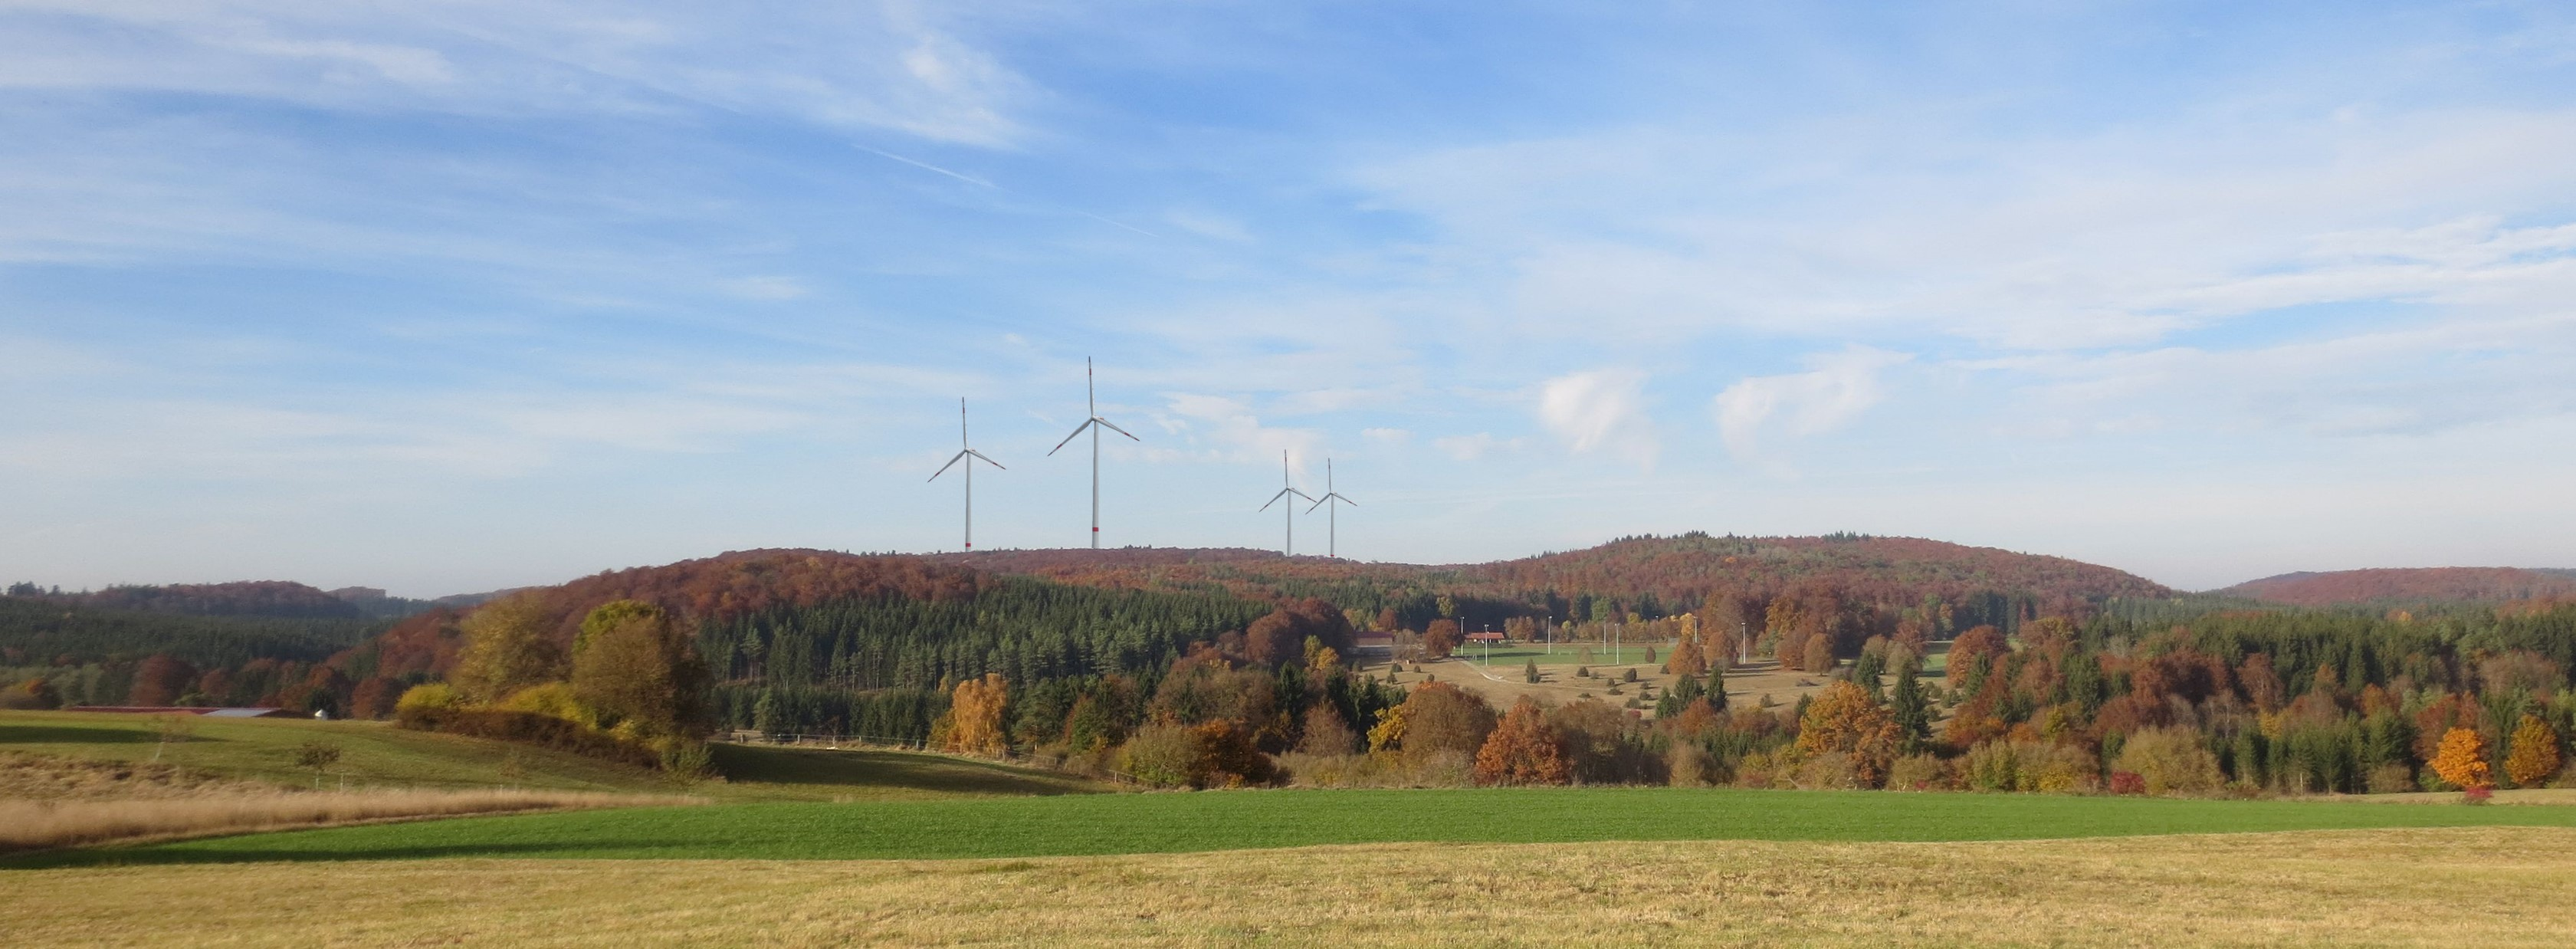 Windkraft Pfronstetten